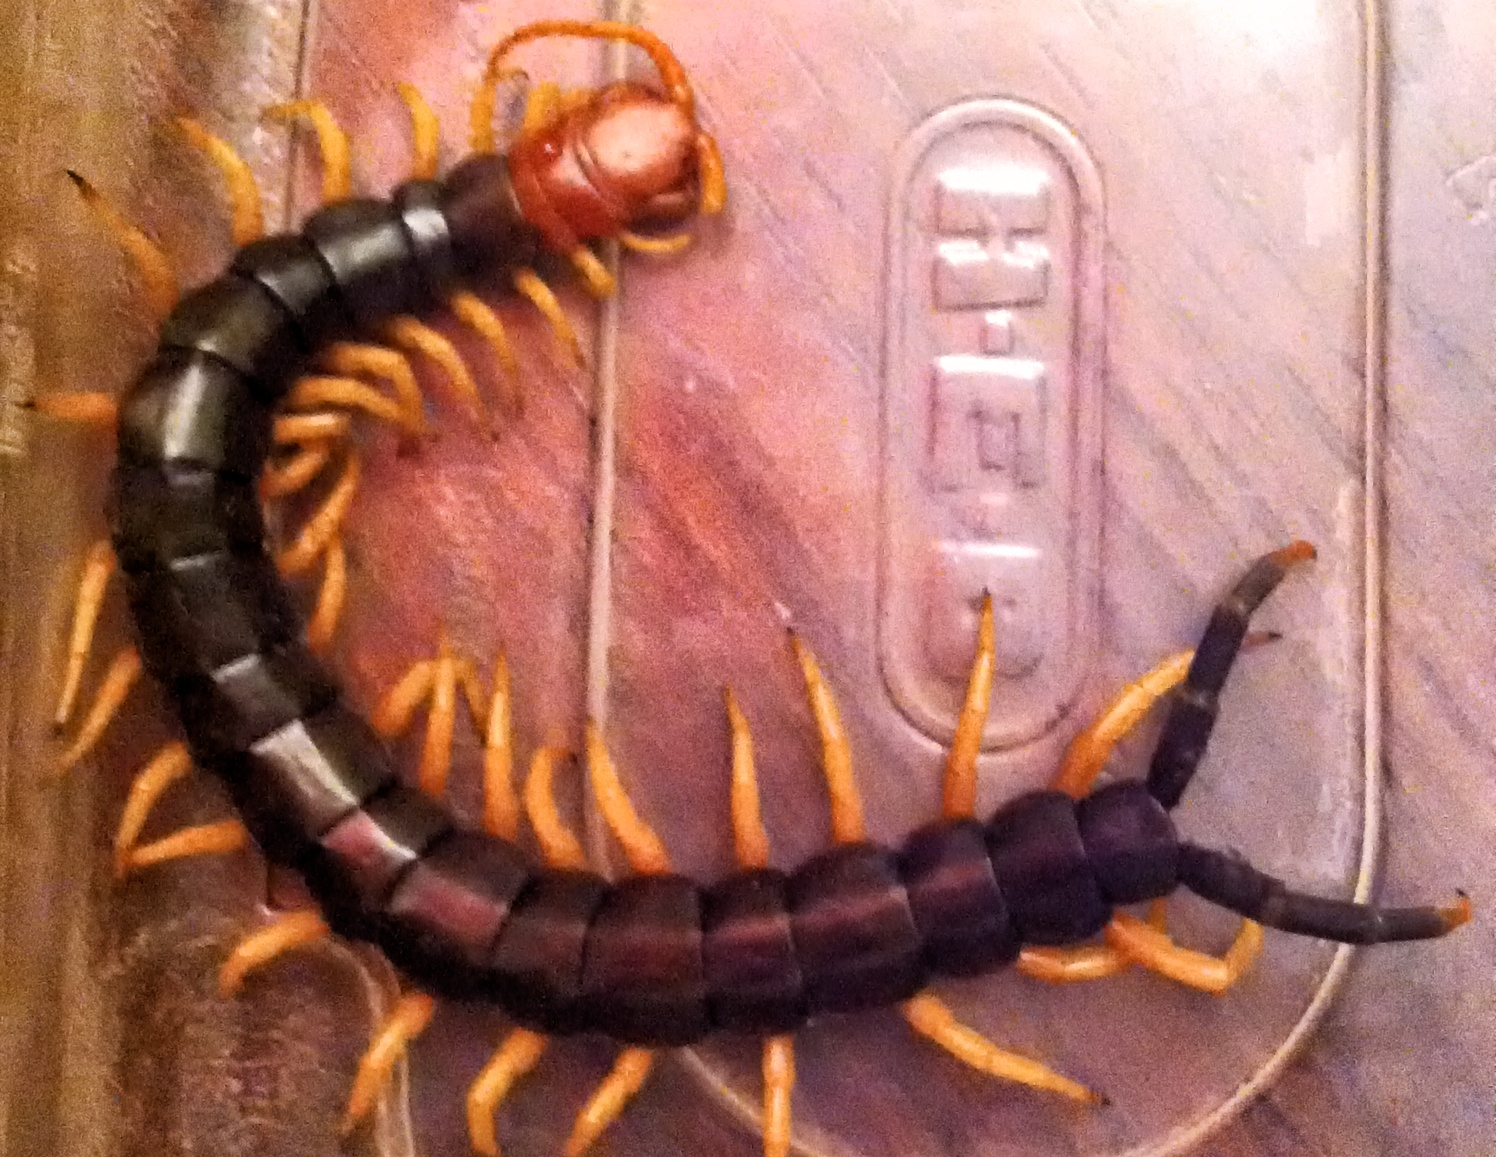 Giant redheaded centipede. Photo Credit: Michael McCullar.